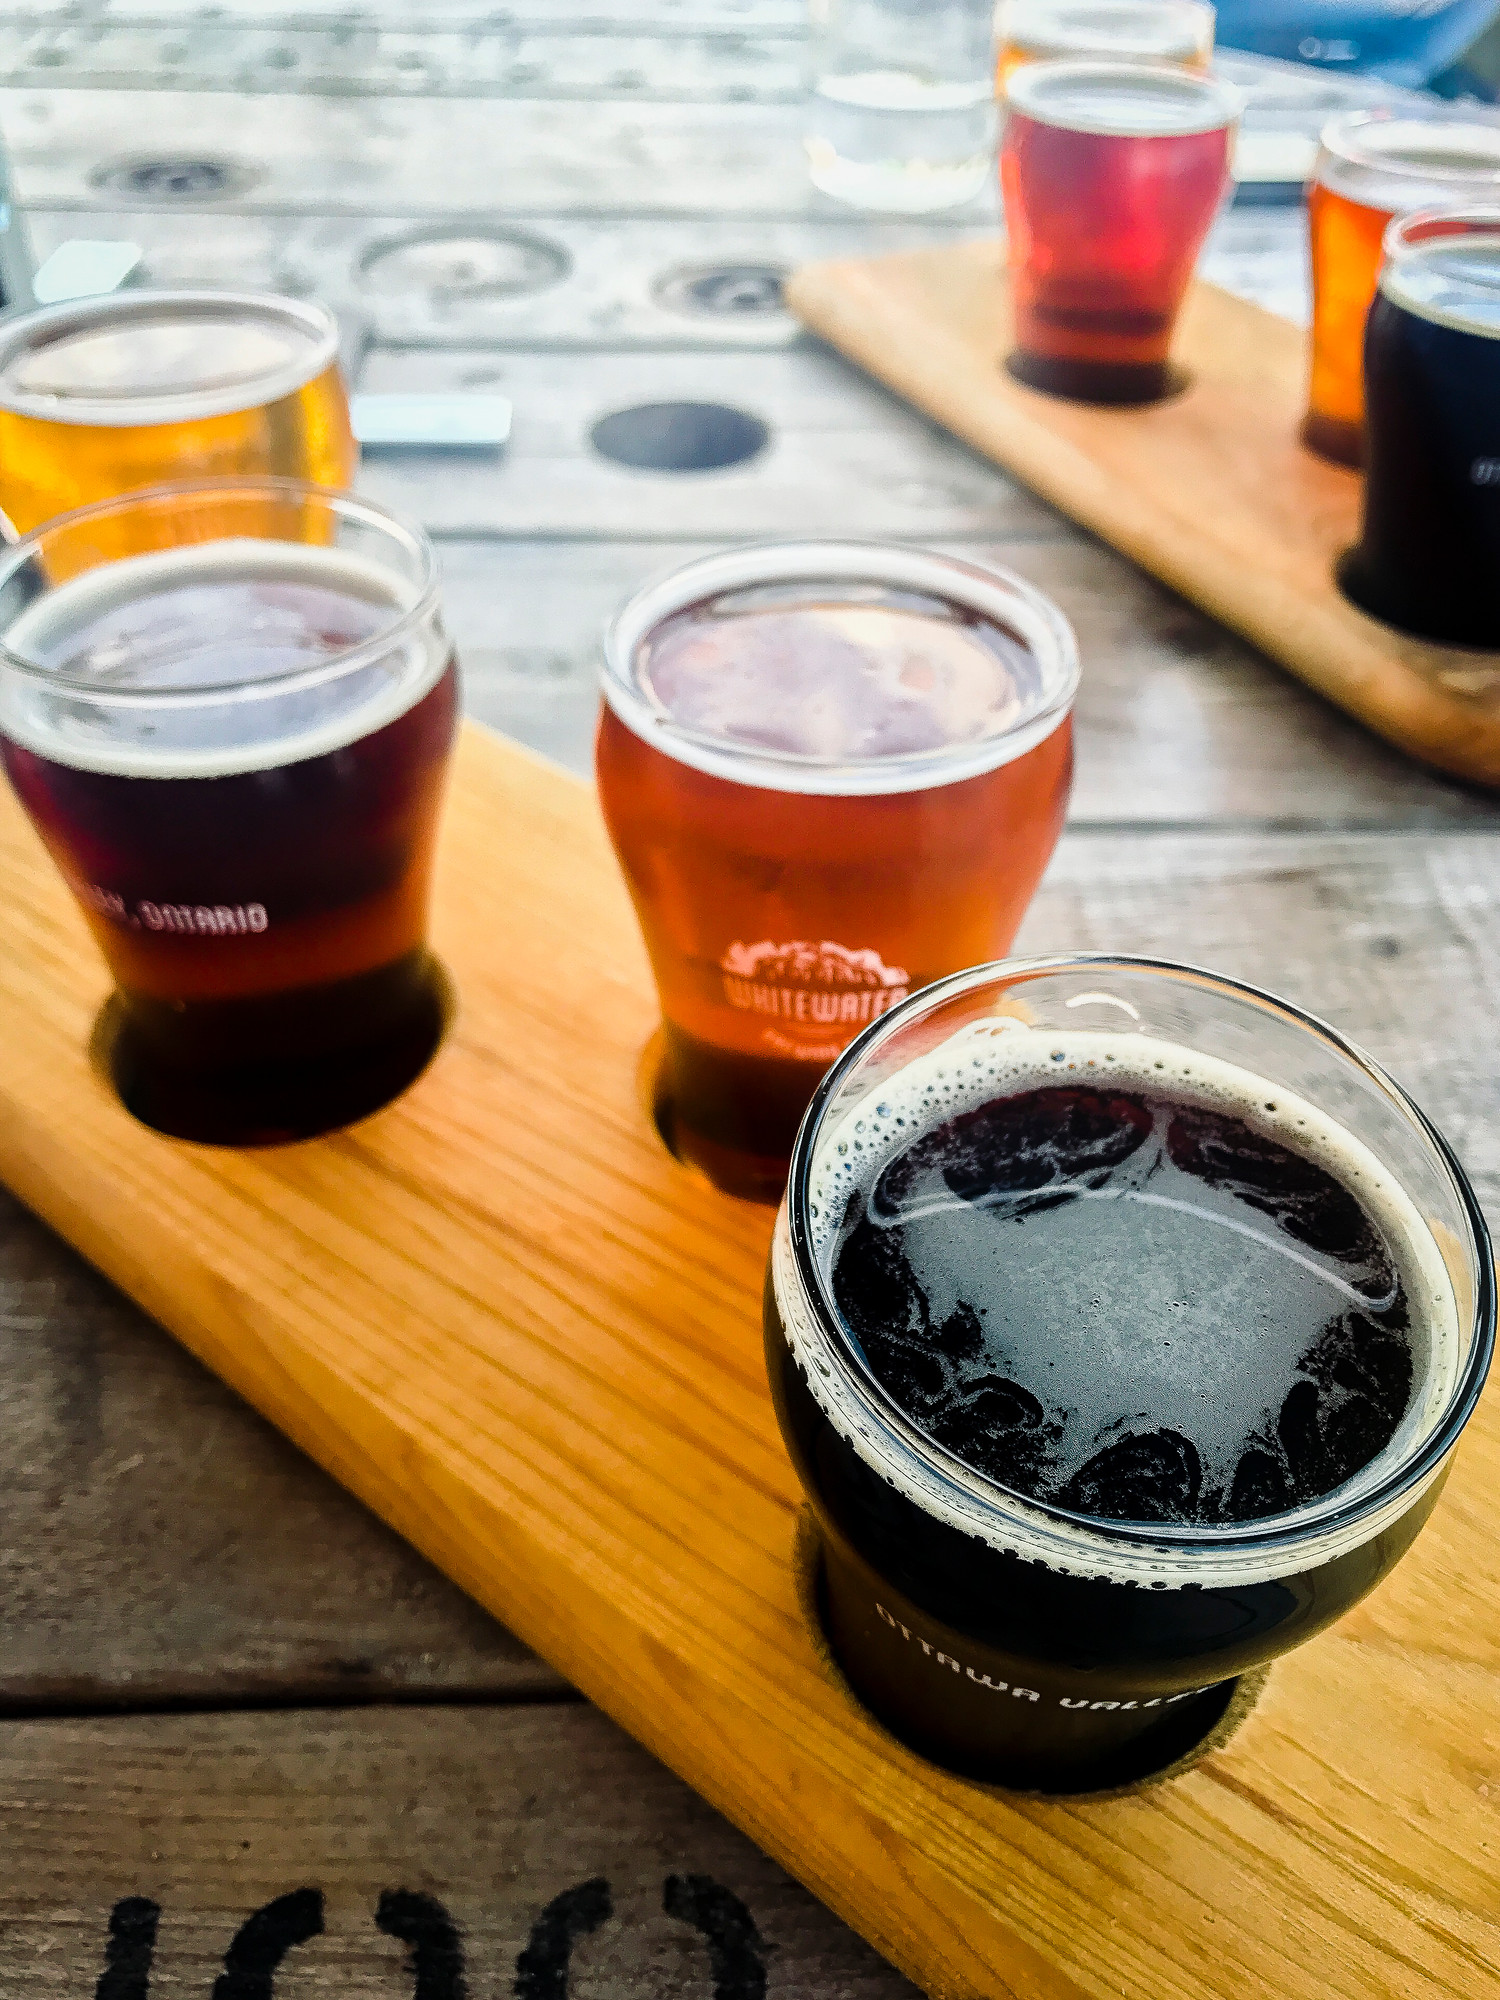 Whitewater Brewing Co flight of beer. Just one stop on the Ottawa Valley Maple Adventures tour.